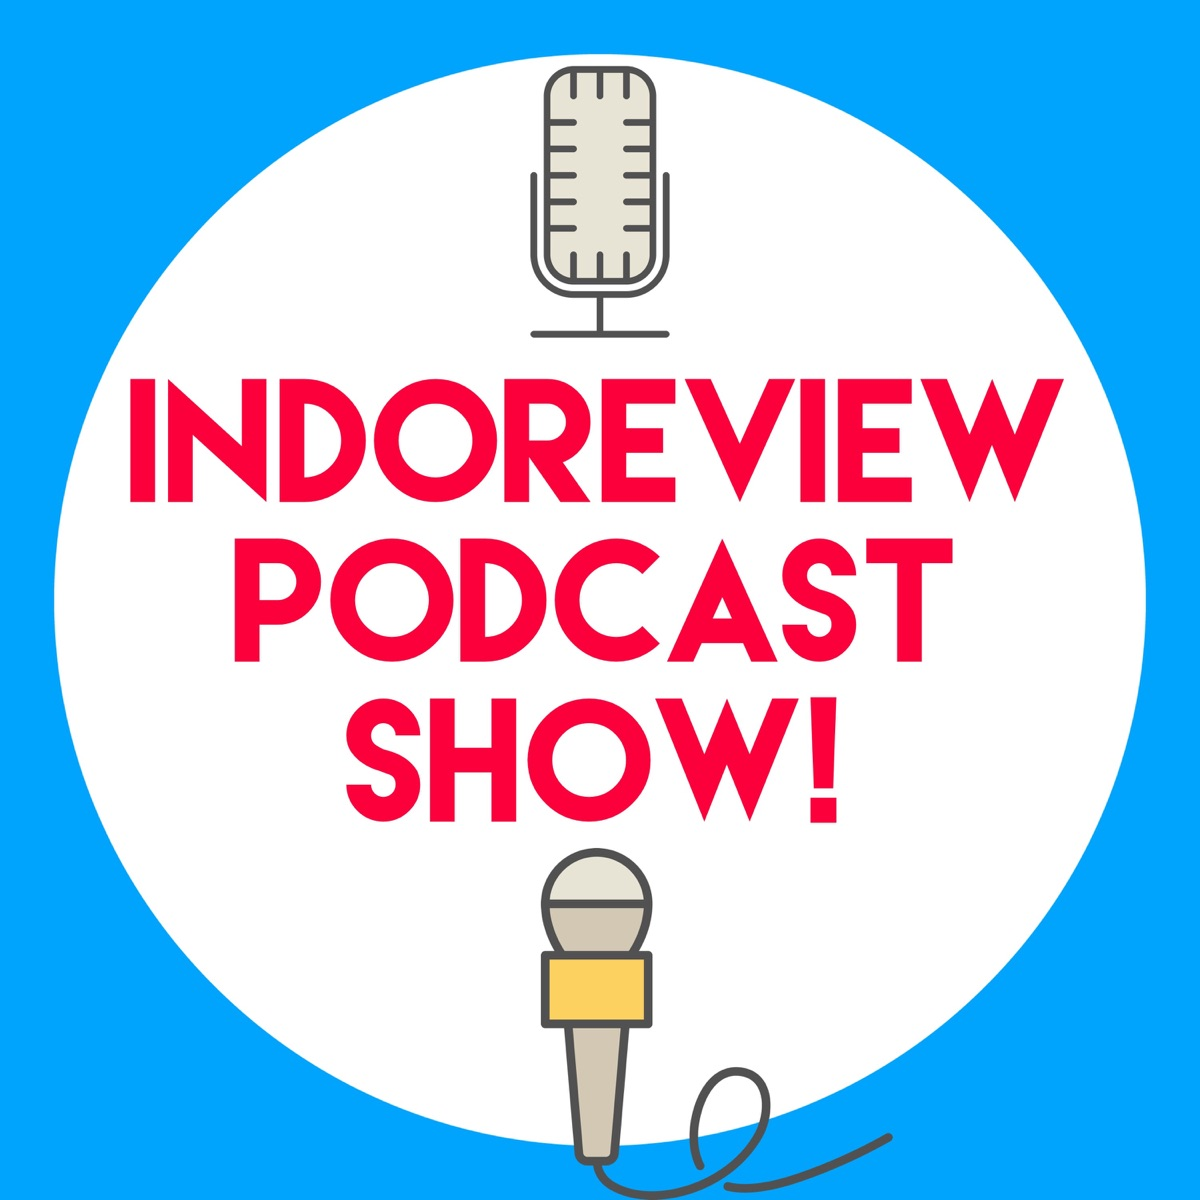 Indoreview Podcast Show!